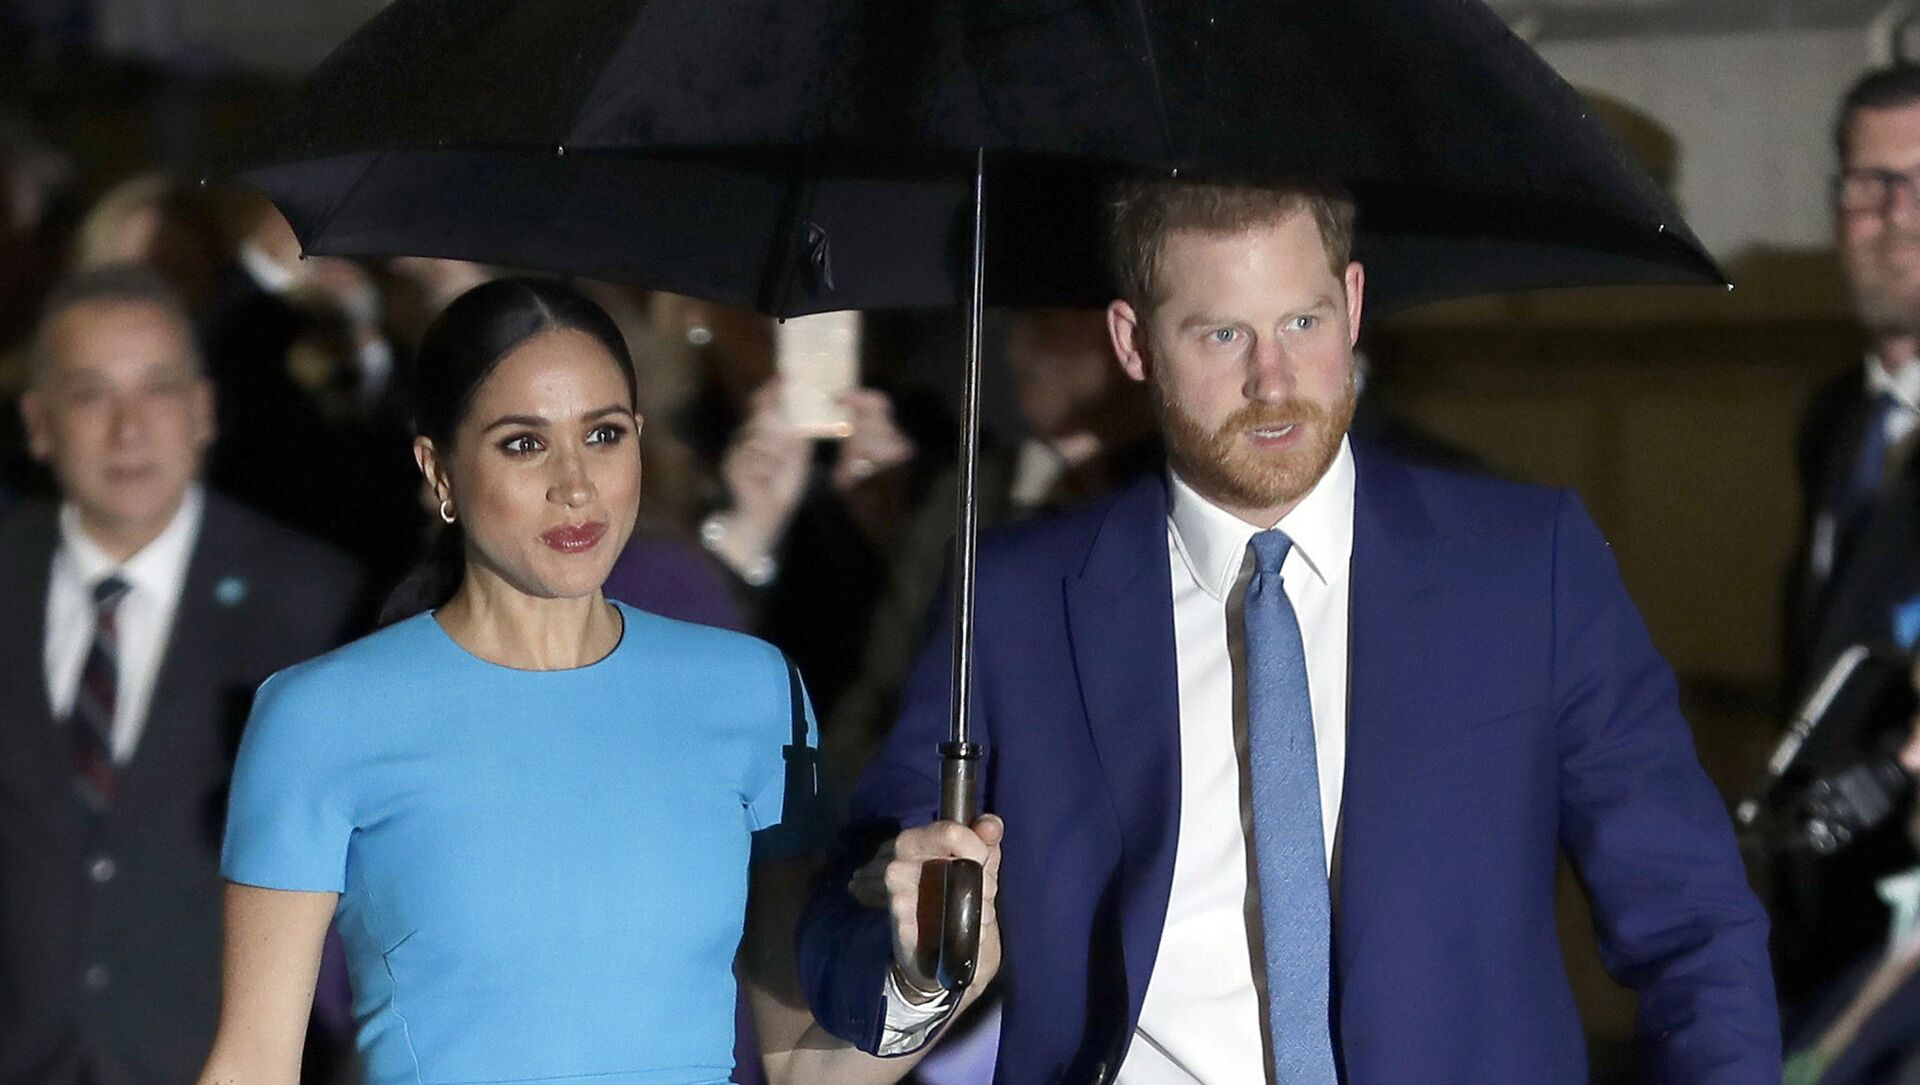 FILE - In this March 5, 2020, file photo, Britain's Prince Harry and Meghan, Duchess of Sussex, arrive at the annual Endeavour Fund Awards in London - Sputnik International, 1920, 21.05.2021